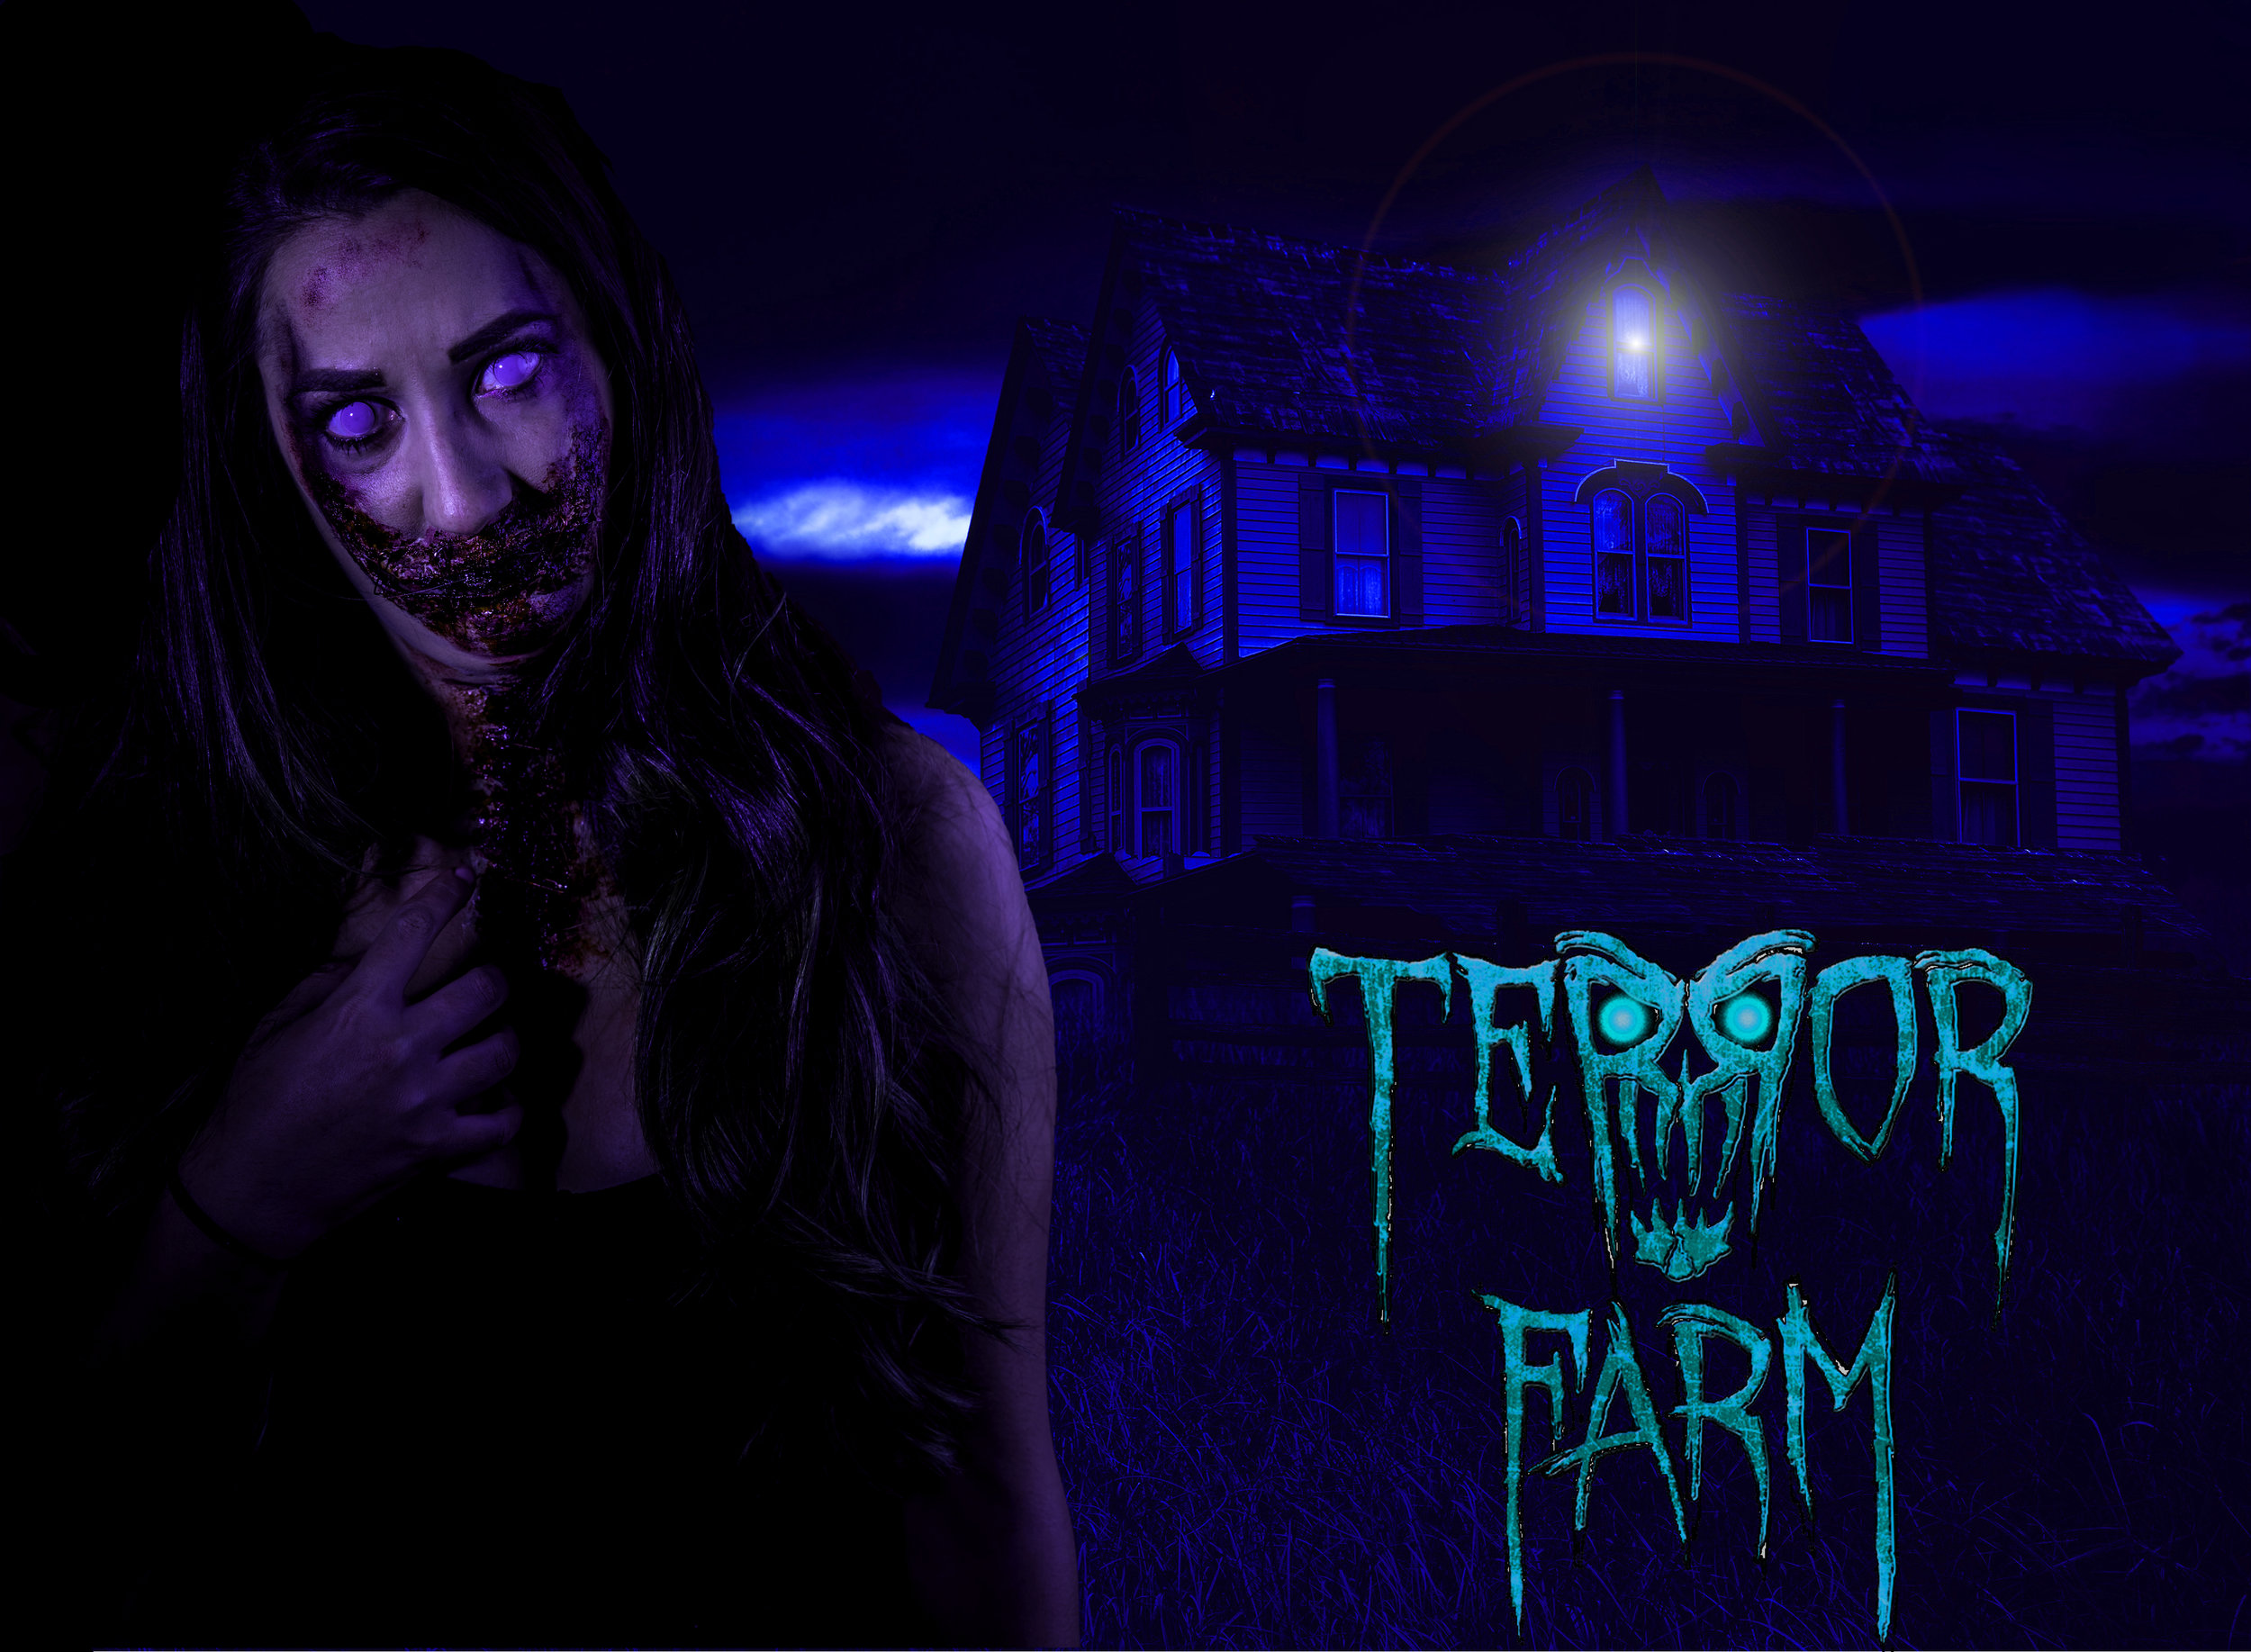 Terror Farm is open October 5th, 11th, 12th, 18th, 19th, 25th, 26th and November 1st and 2nd.  The Ticket booth opens at 6:00 P.M. Doors open at dark (approximately 6:45 p.m.) or at the discretion of the management.  THE MANAGEMENT RESERVES THE RIGHT TO STOP SELLING TICKETS AT ANY TIME BASED UPON WEATHER OR CROWD.